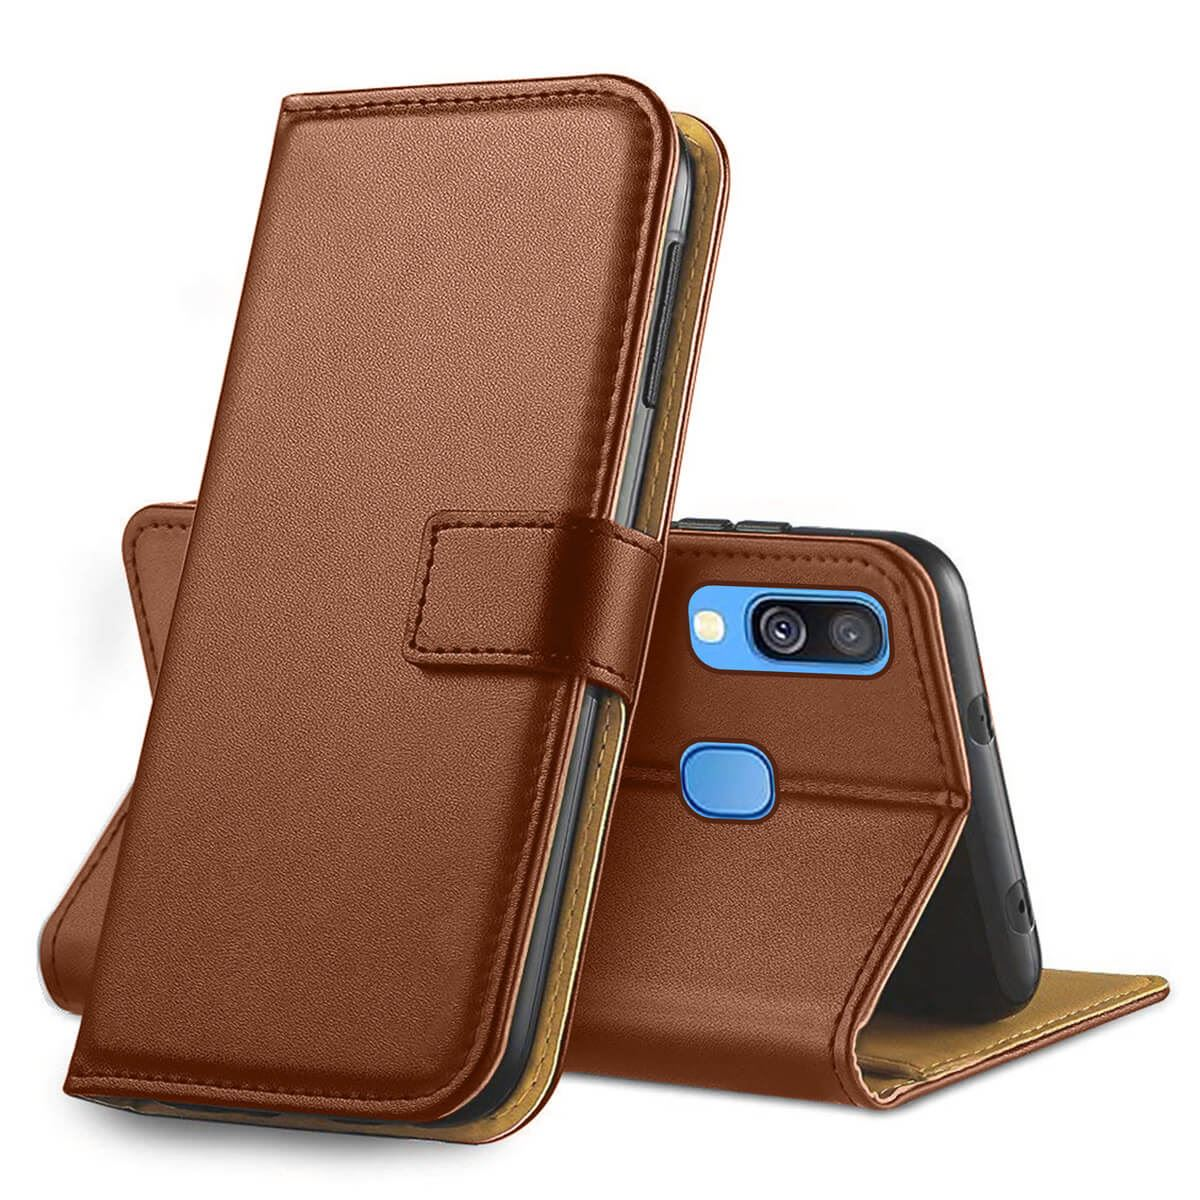 Magnetic-Flip-Wallet-Case-For-Samsung-Galaxy-S10-Plus-S9-S8-A50-Leather-Cover thumbnail 8